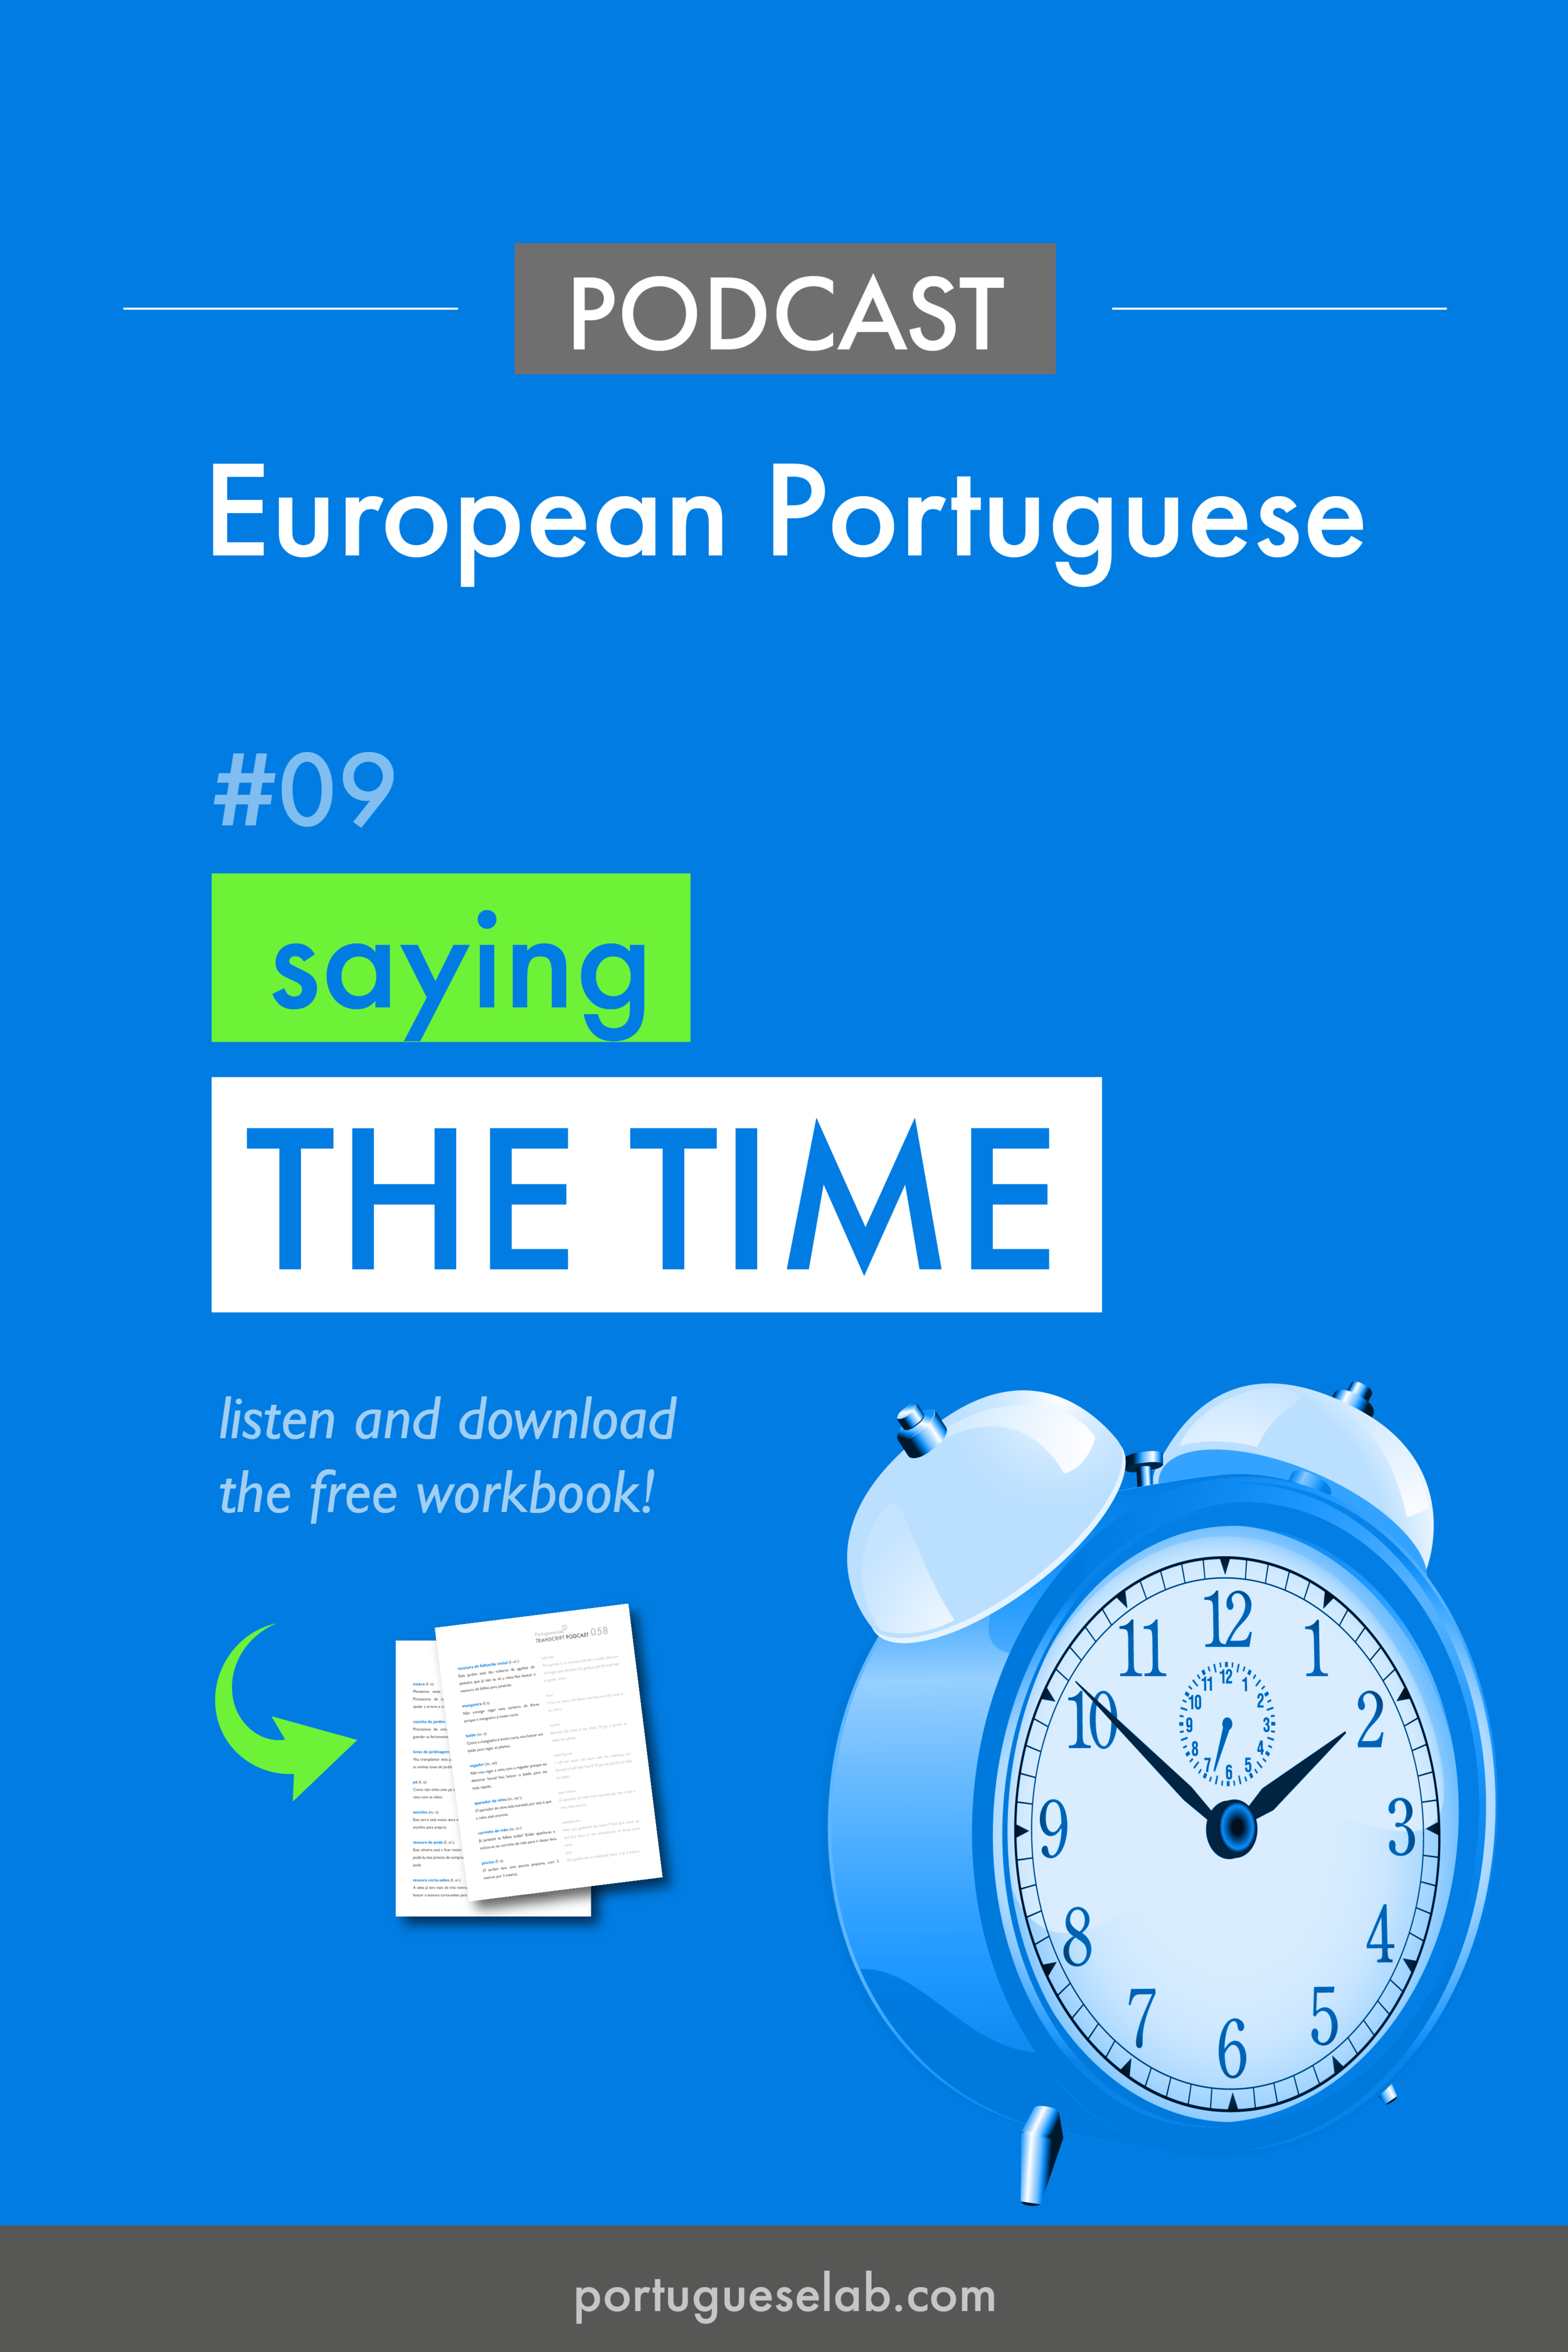 Portuguese Lab Podcast - European Portuguese - 09 - Saying the time.png